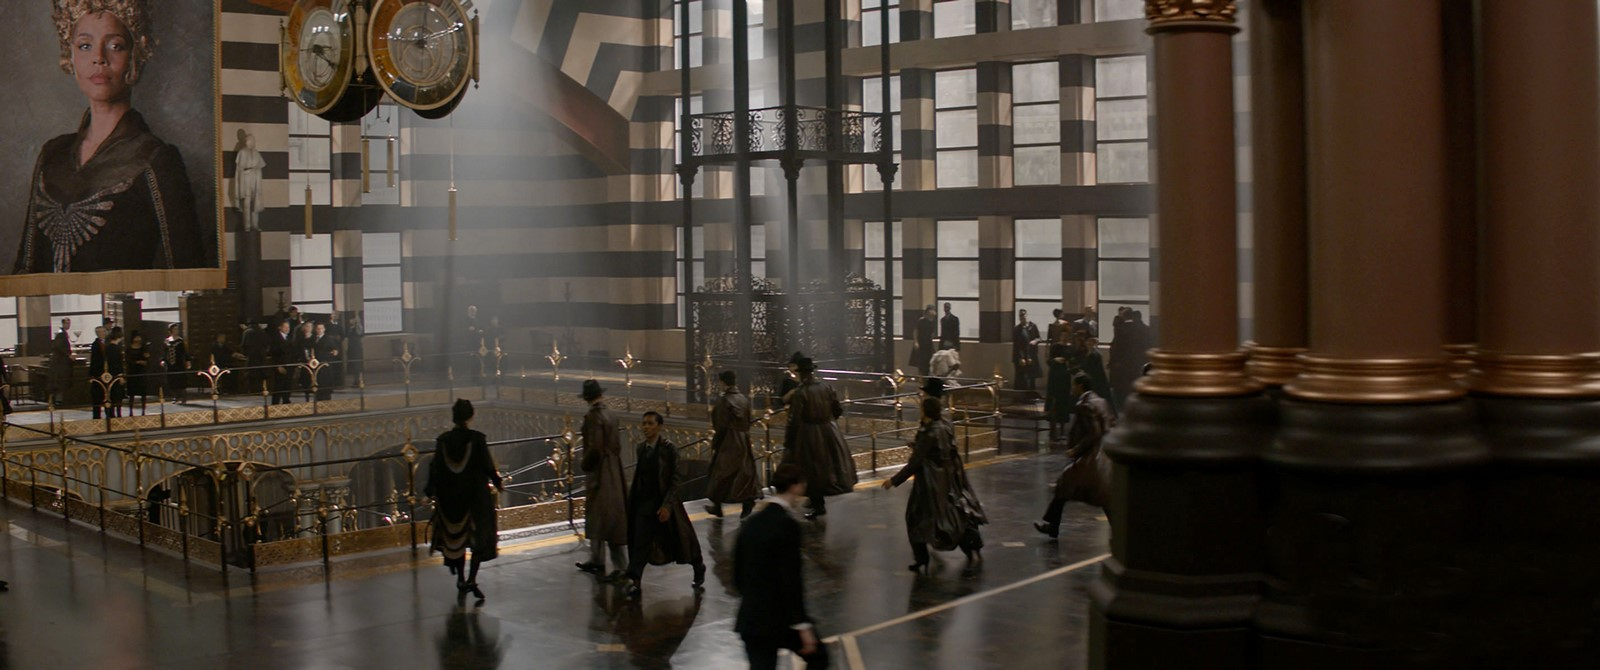 The Wizarding World meets Architectural world - Sheet23